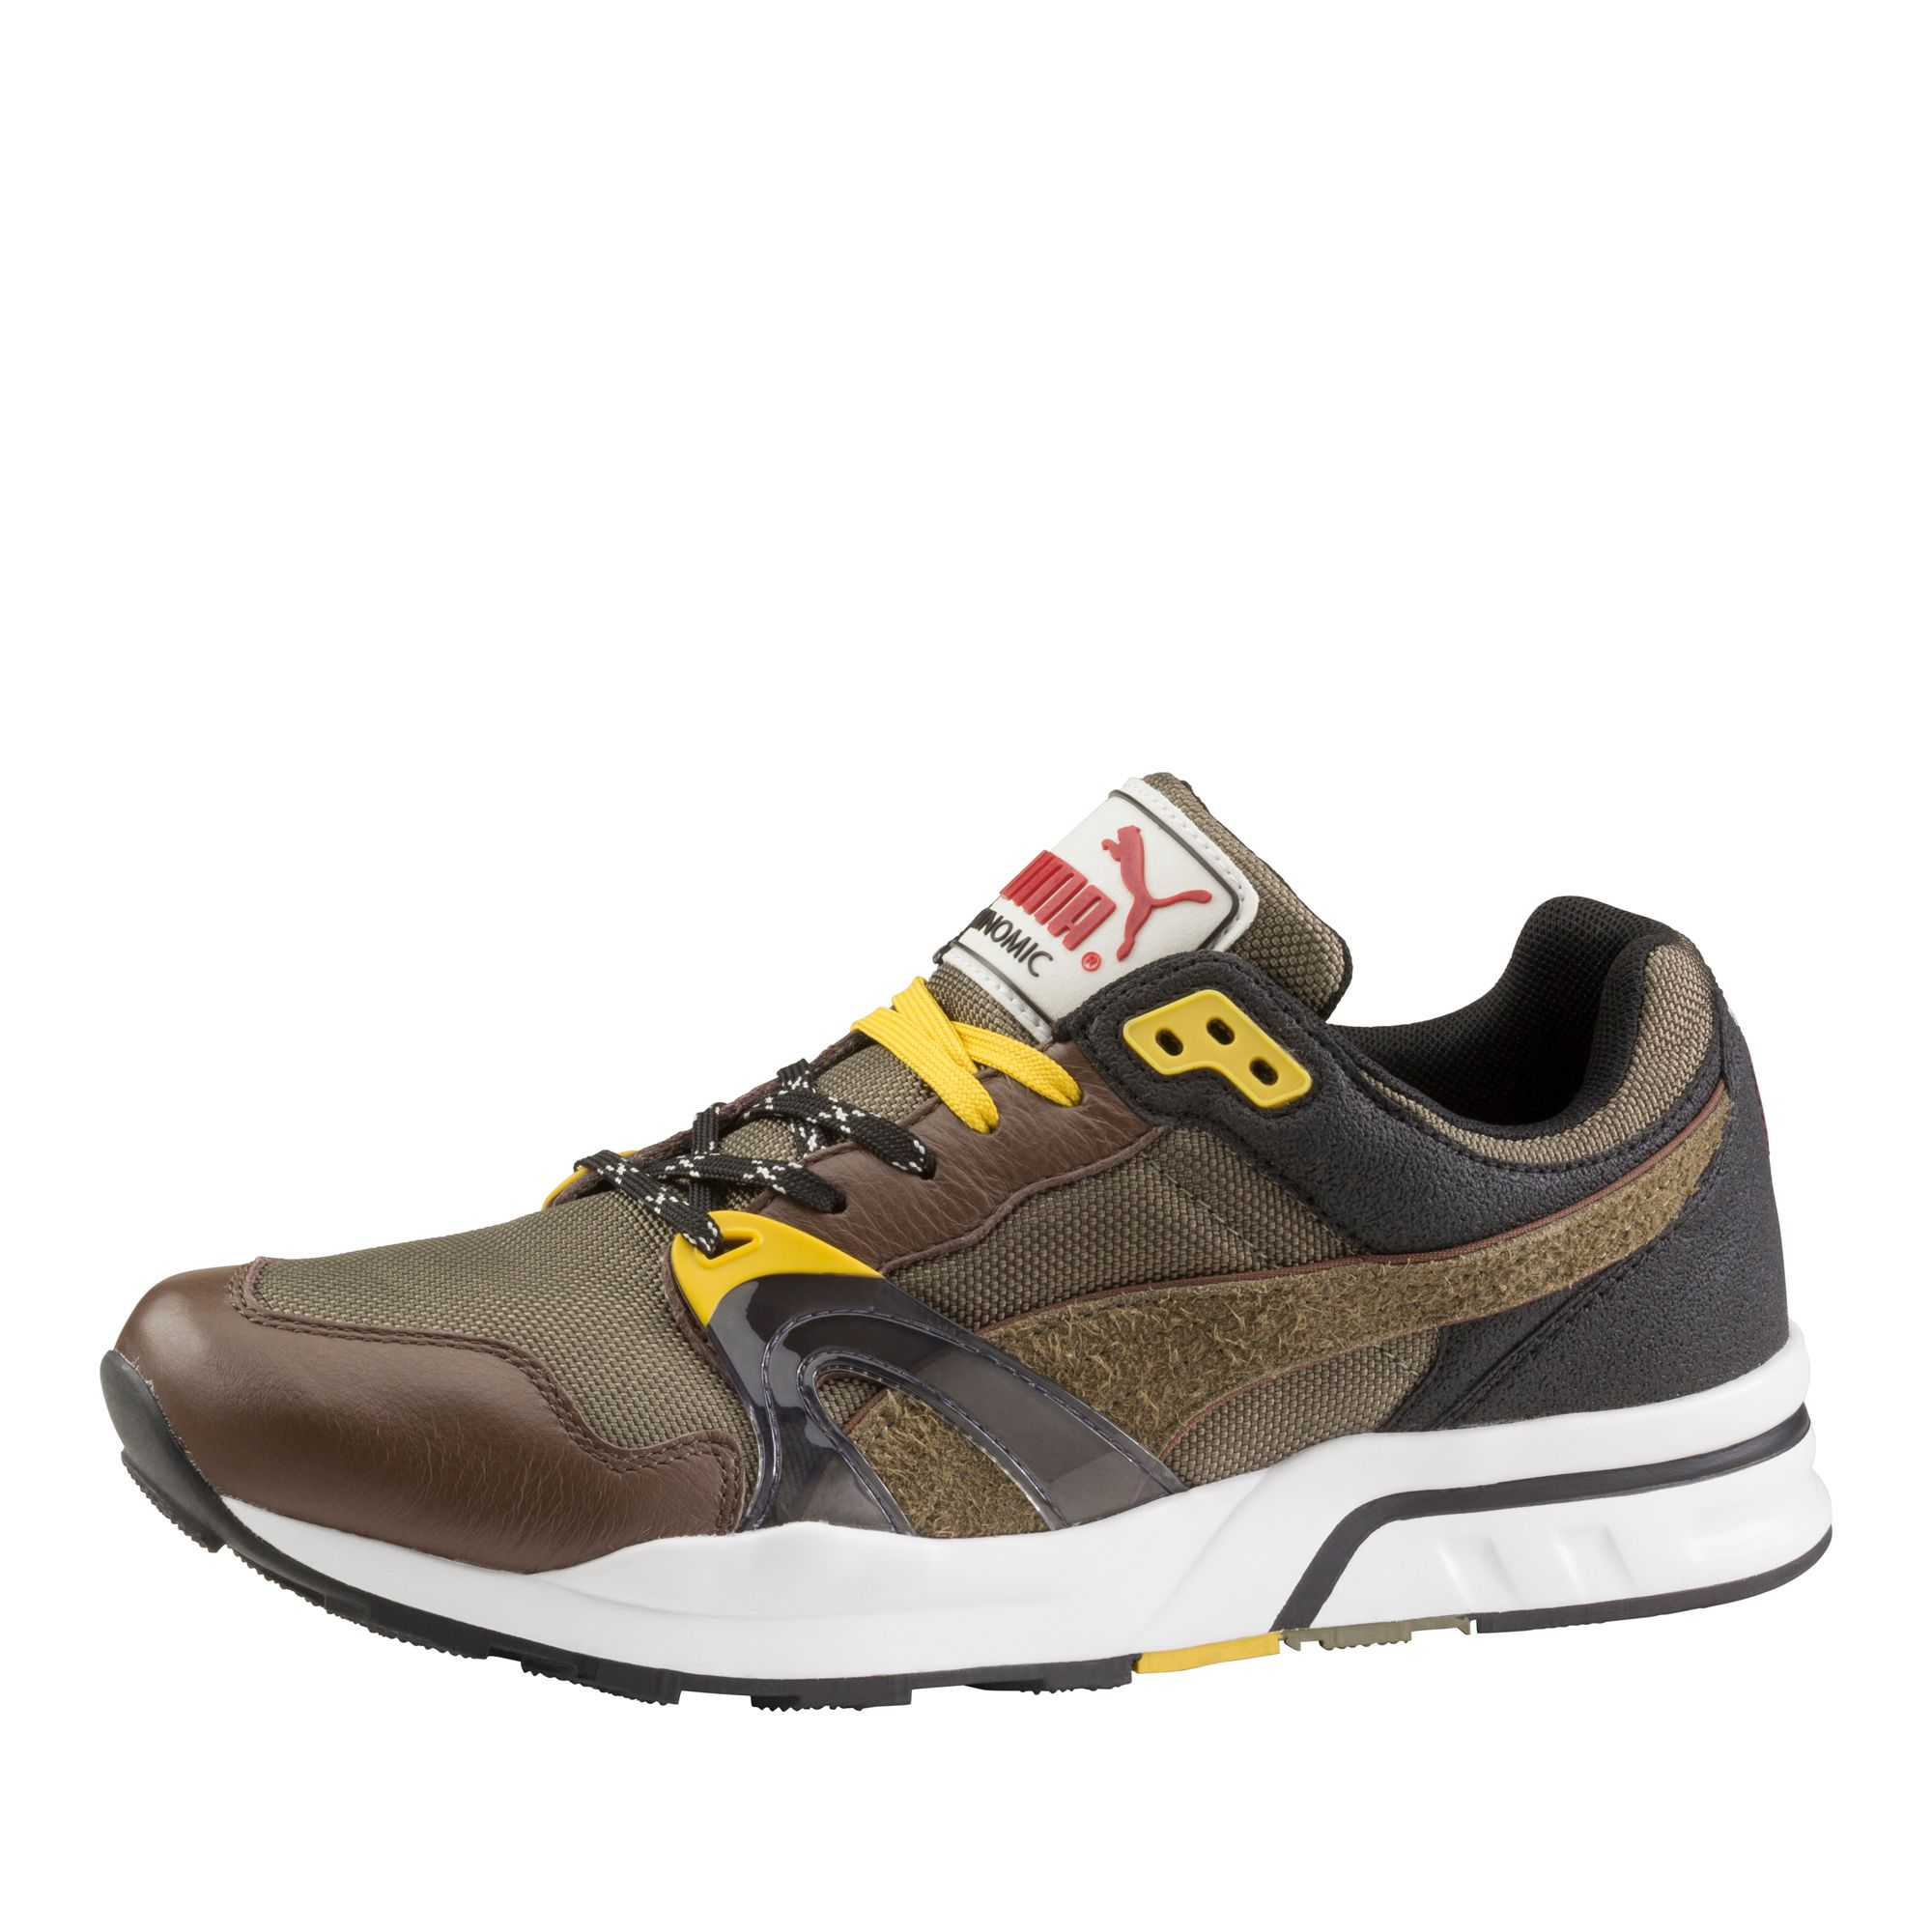 puma trinomic xt1 plus unisex trainers